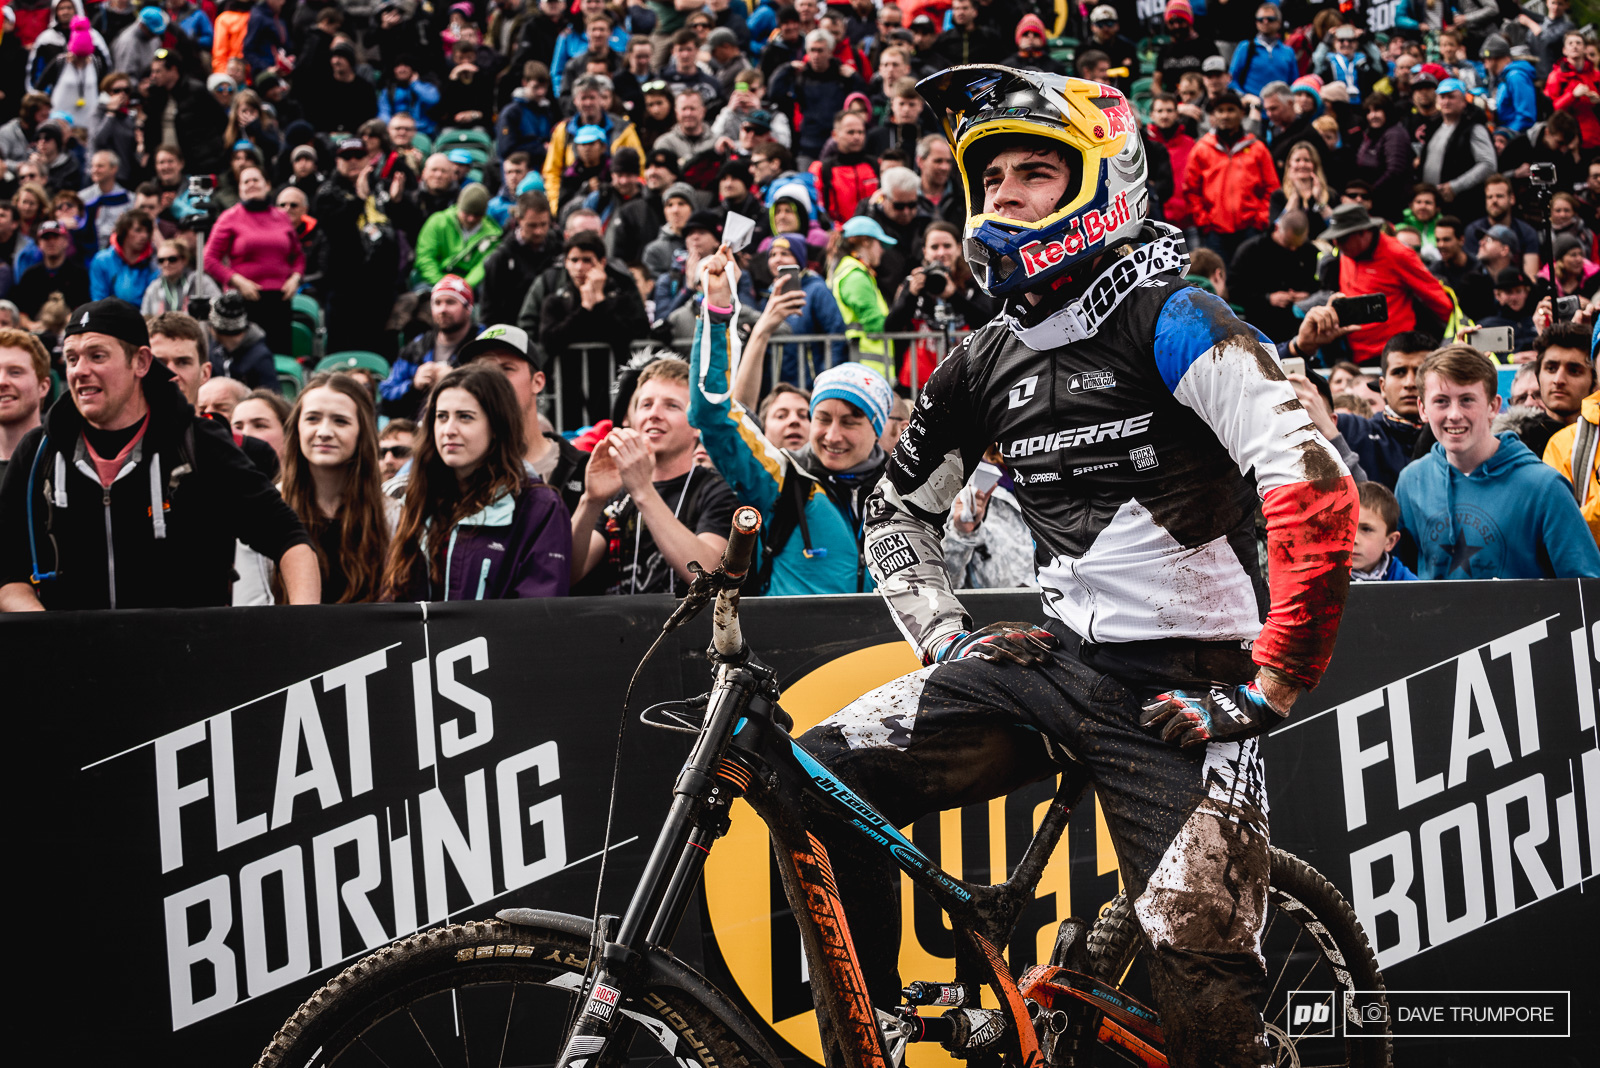 After qualifying in 1st a random rock hidden in a rut ended Loic Bruni s hopes at taking his first World Cup win in Fort William.